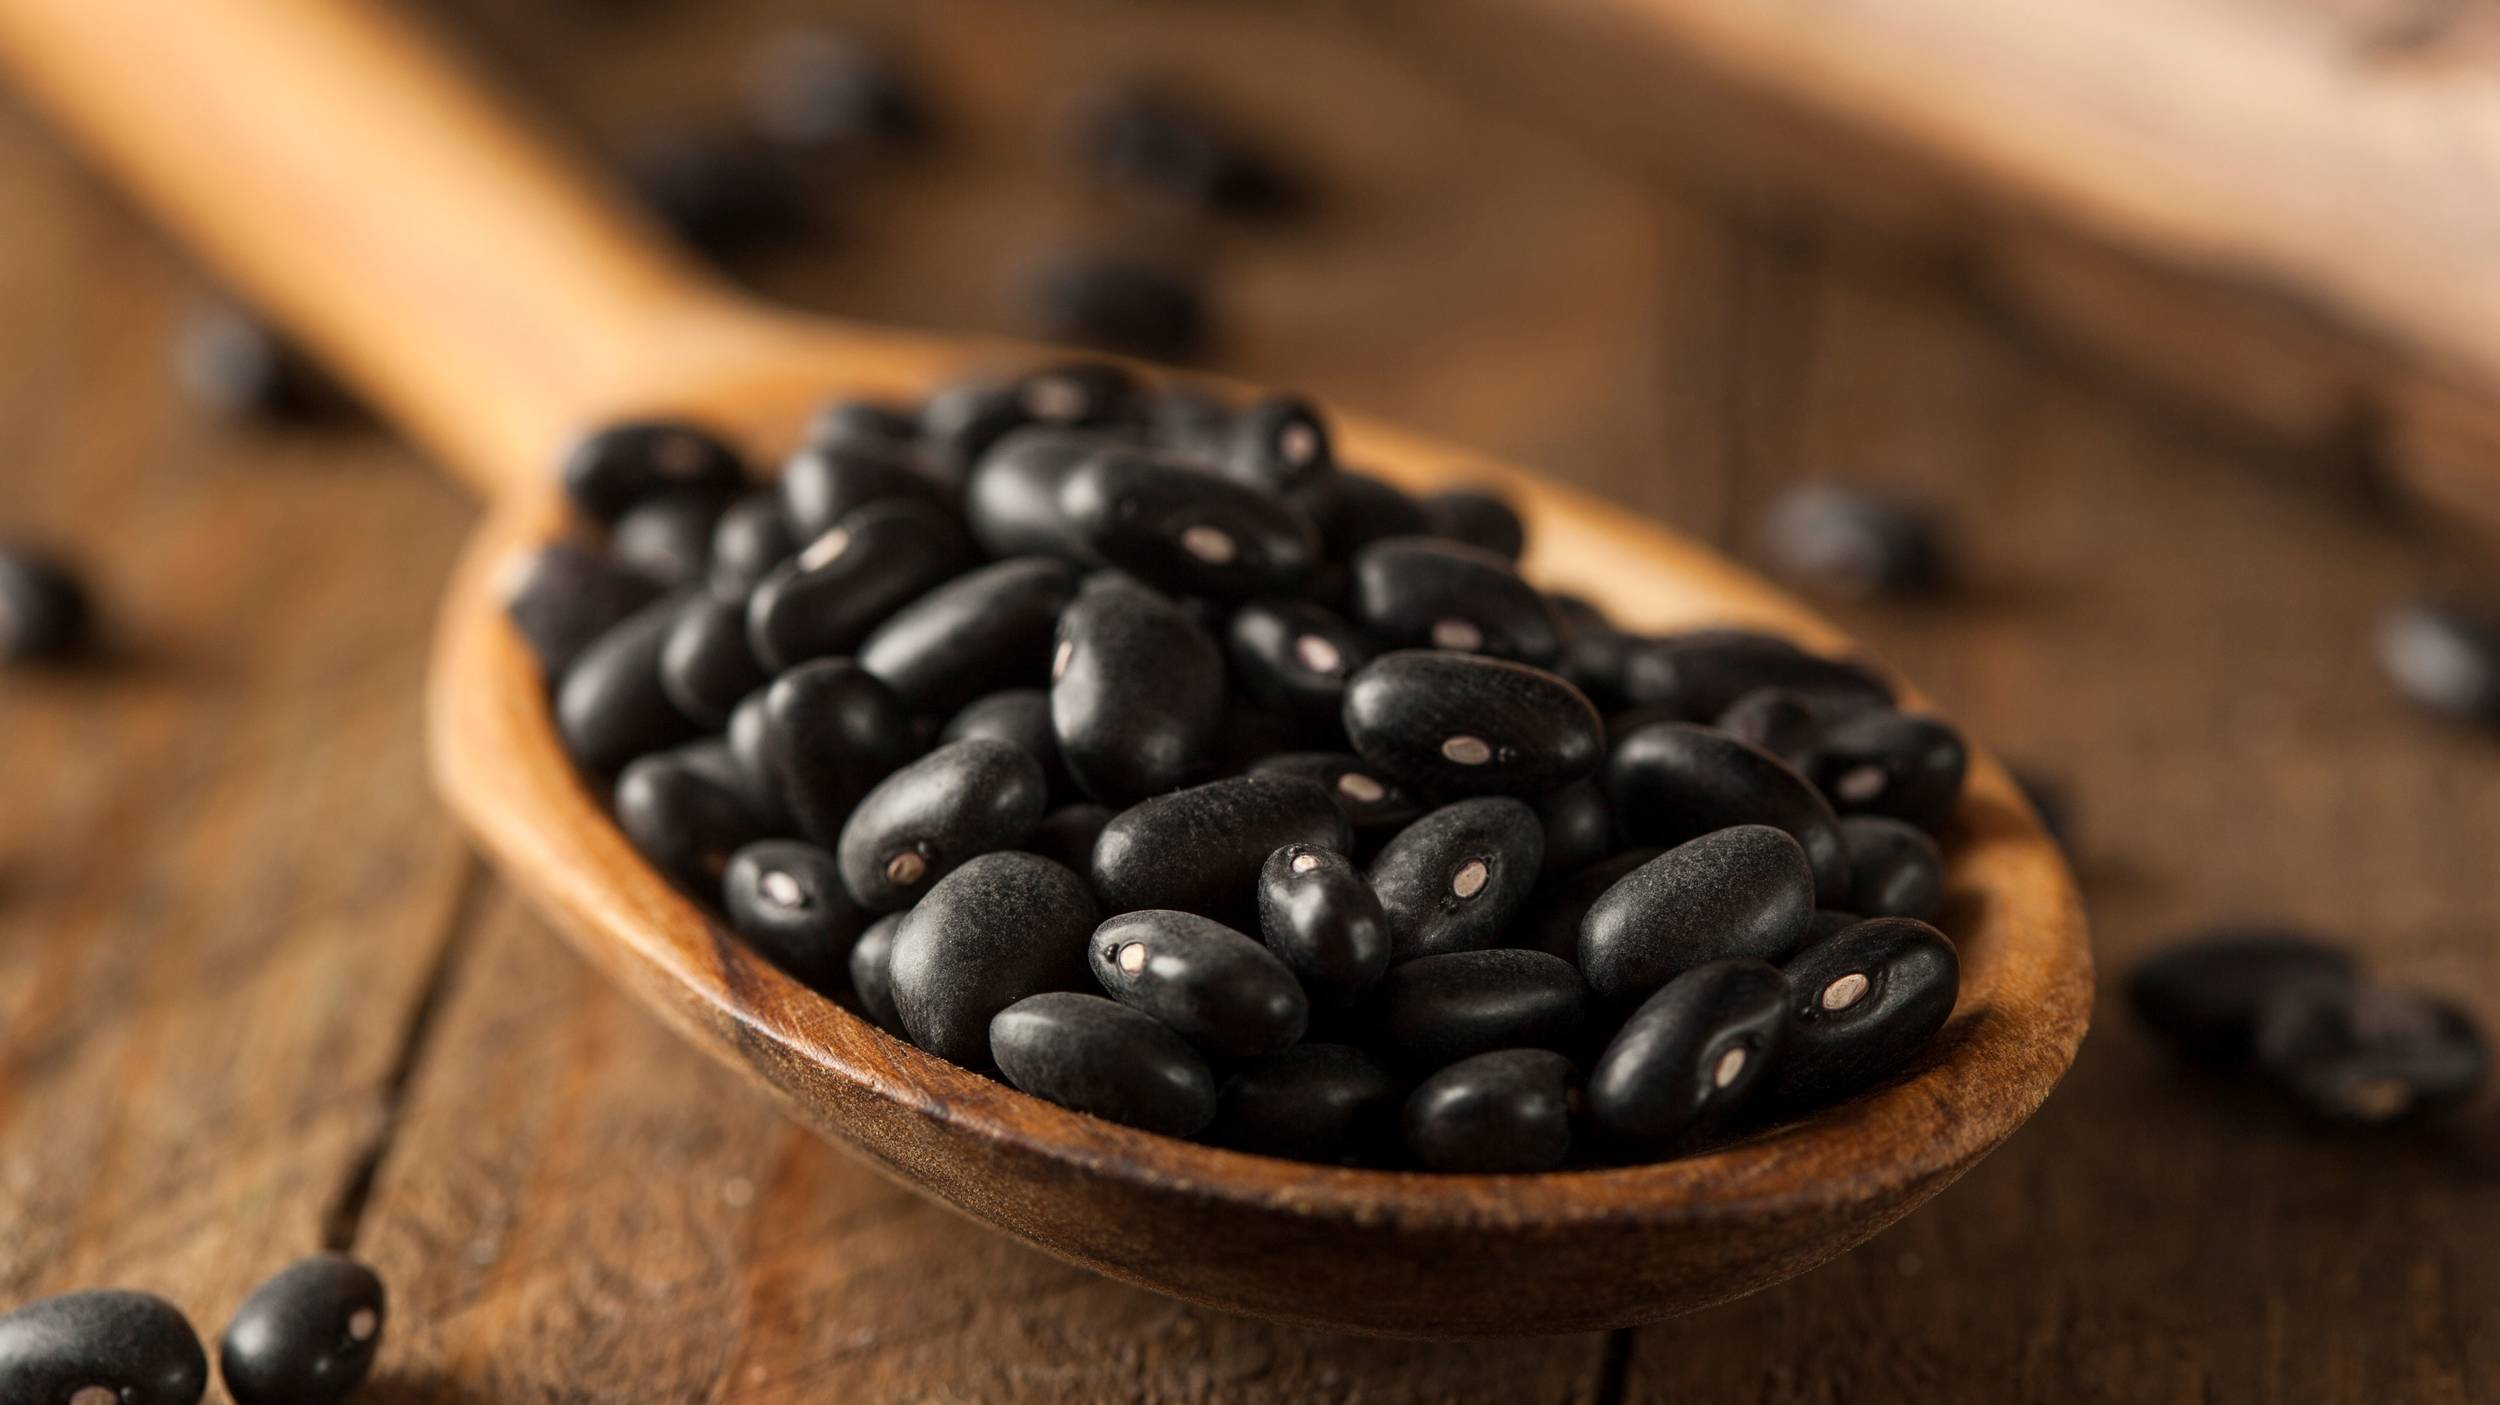 Black beans make the perfect accompaniment to meat-based dishes or as a vegan meal.